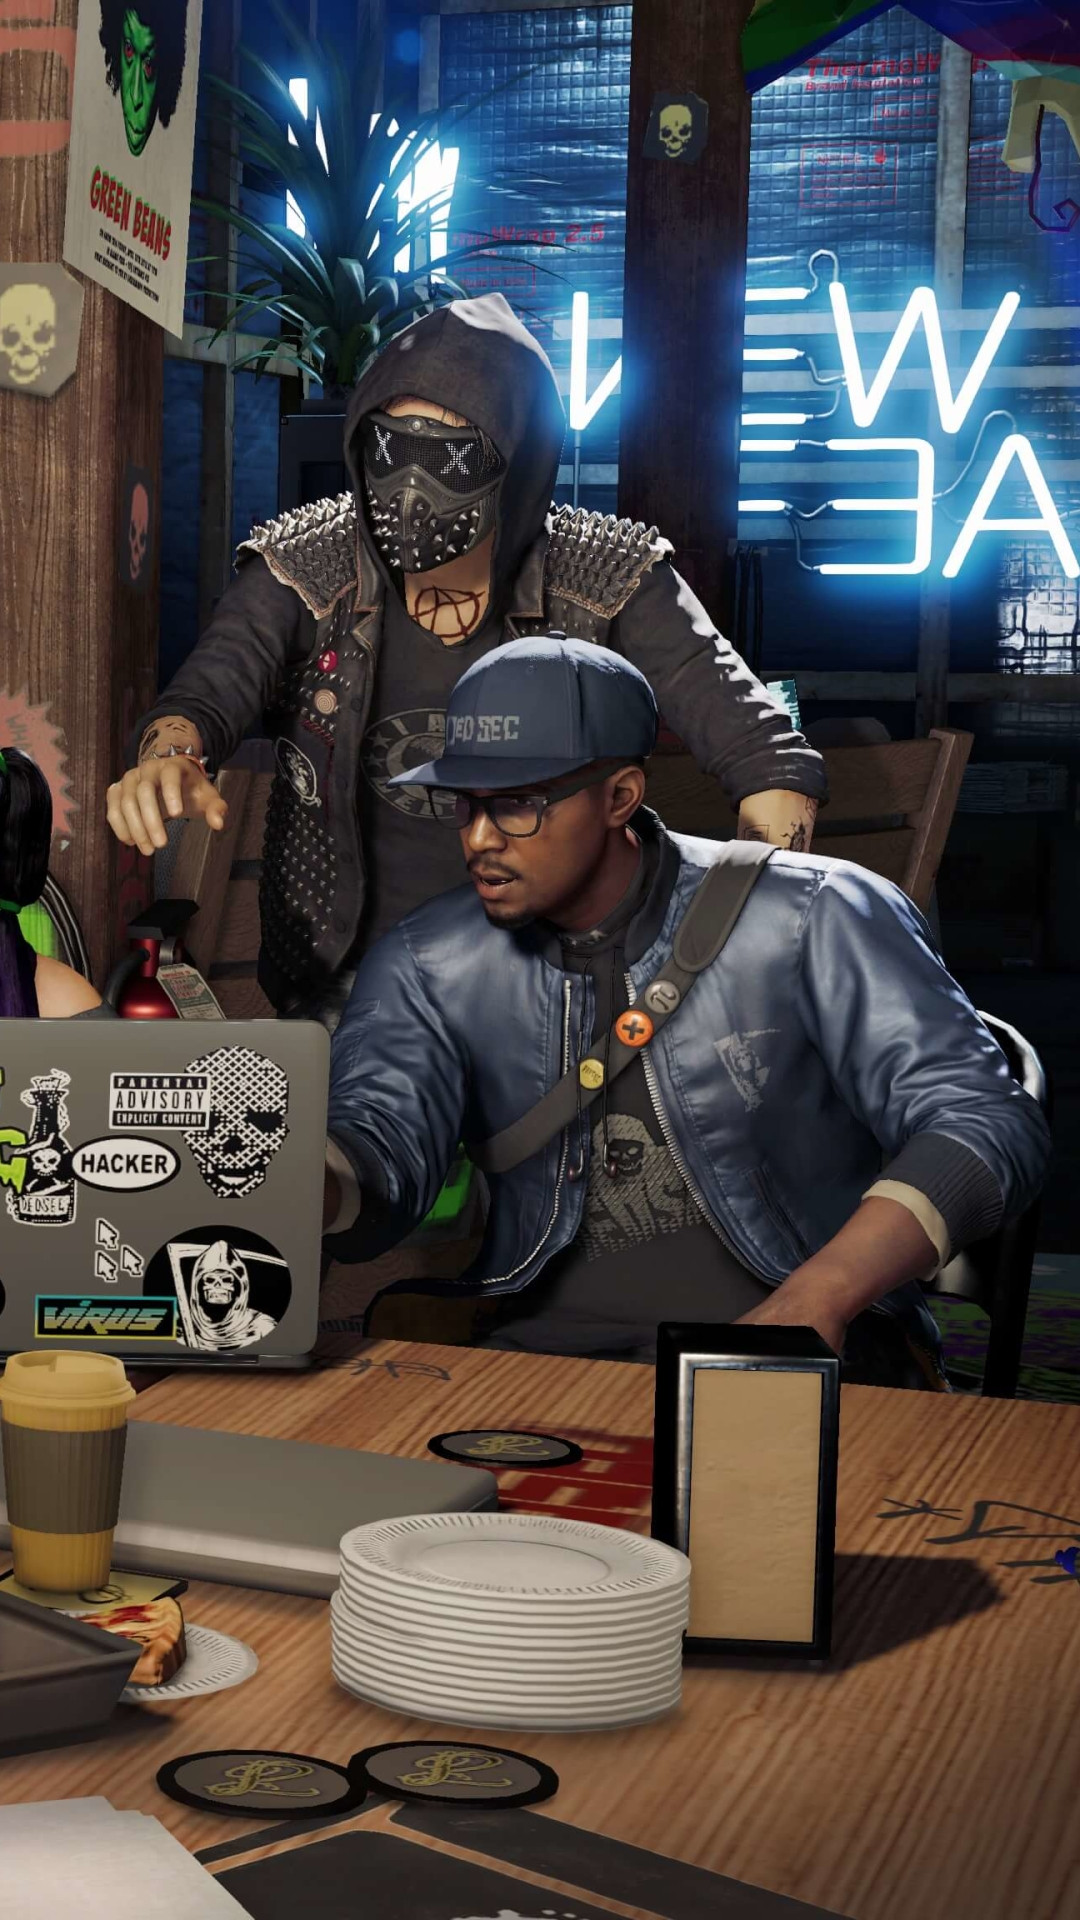 beautiful watch dogs 2 wallpaper for